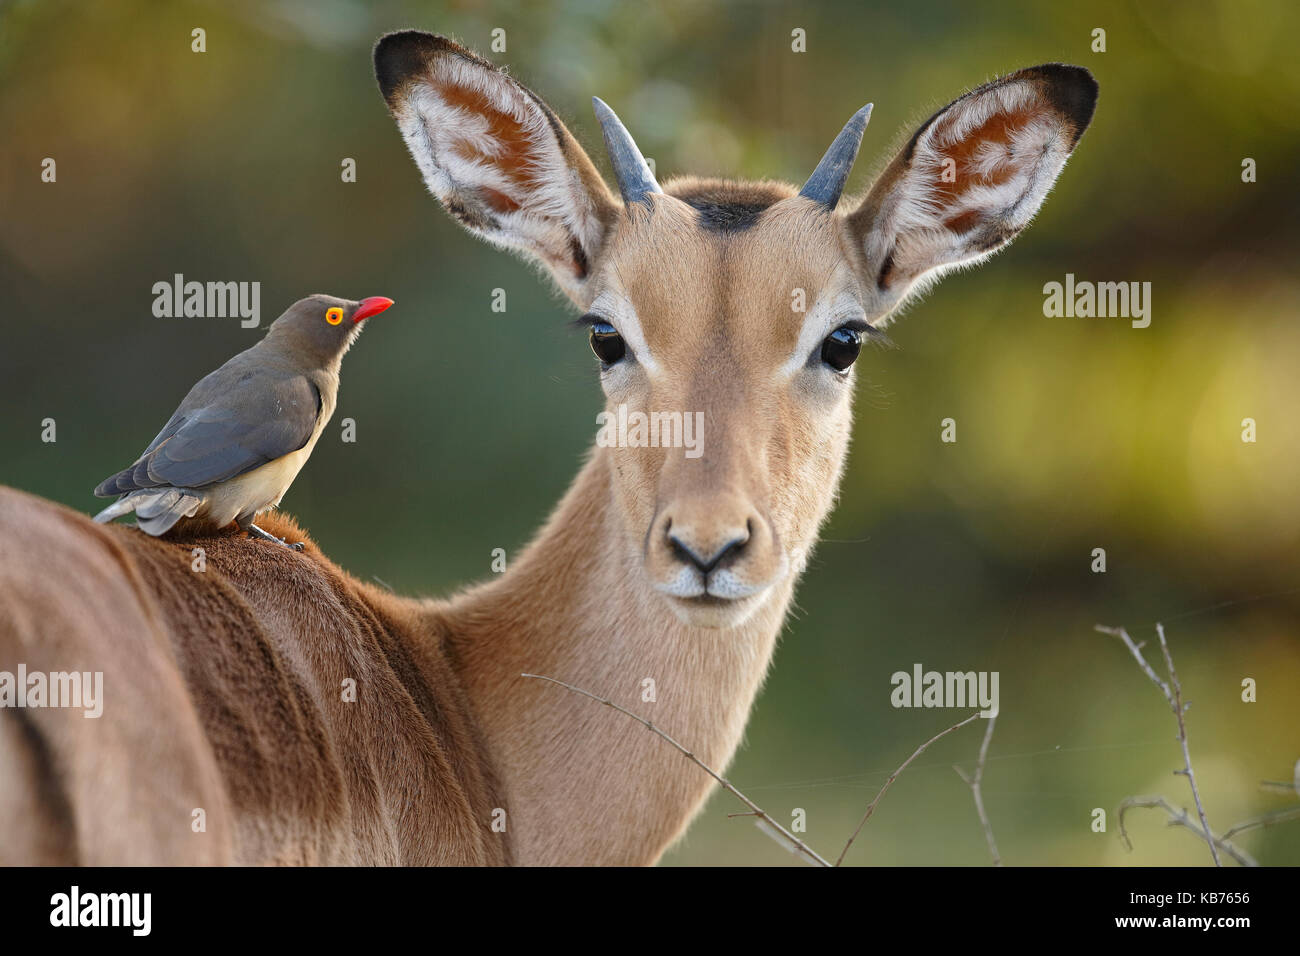 Impala (Aepyceros melampus) with Red-billed Oxpecker (Buphagus erythrorhynchus), South Africa, Mpumalanga, Kruger - Stock Image